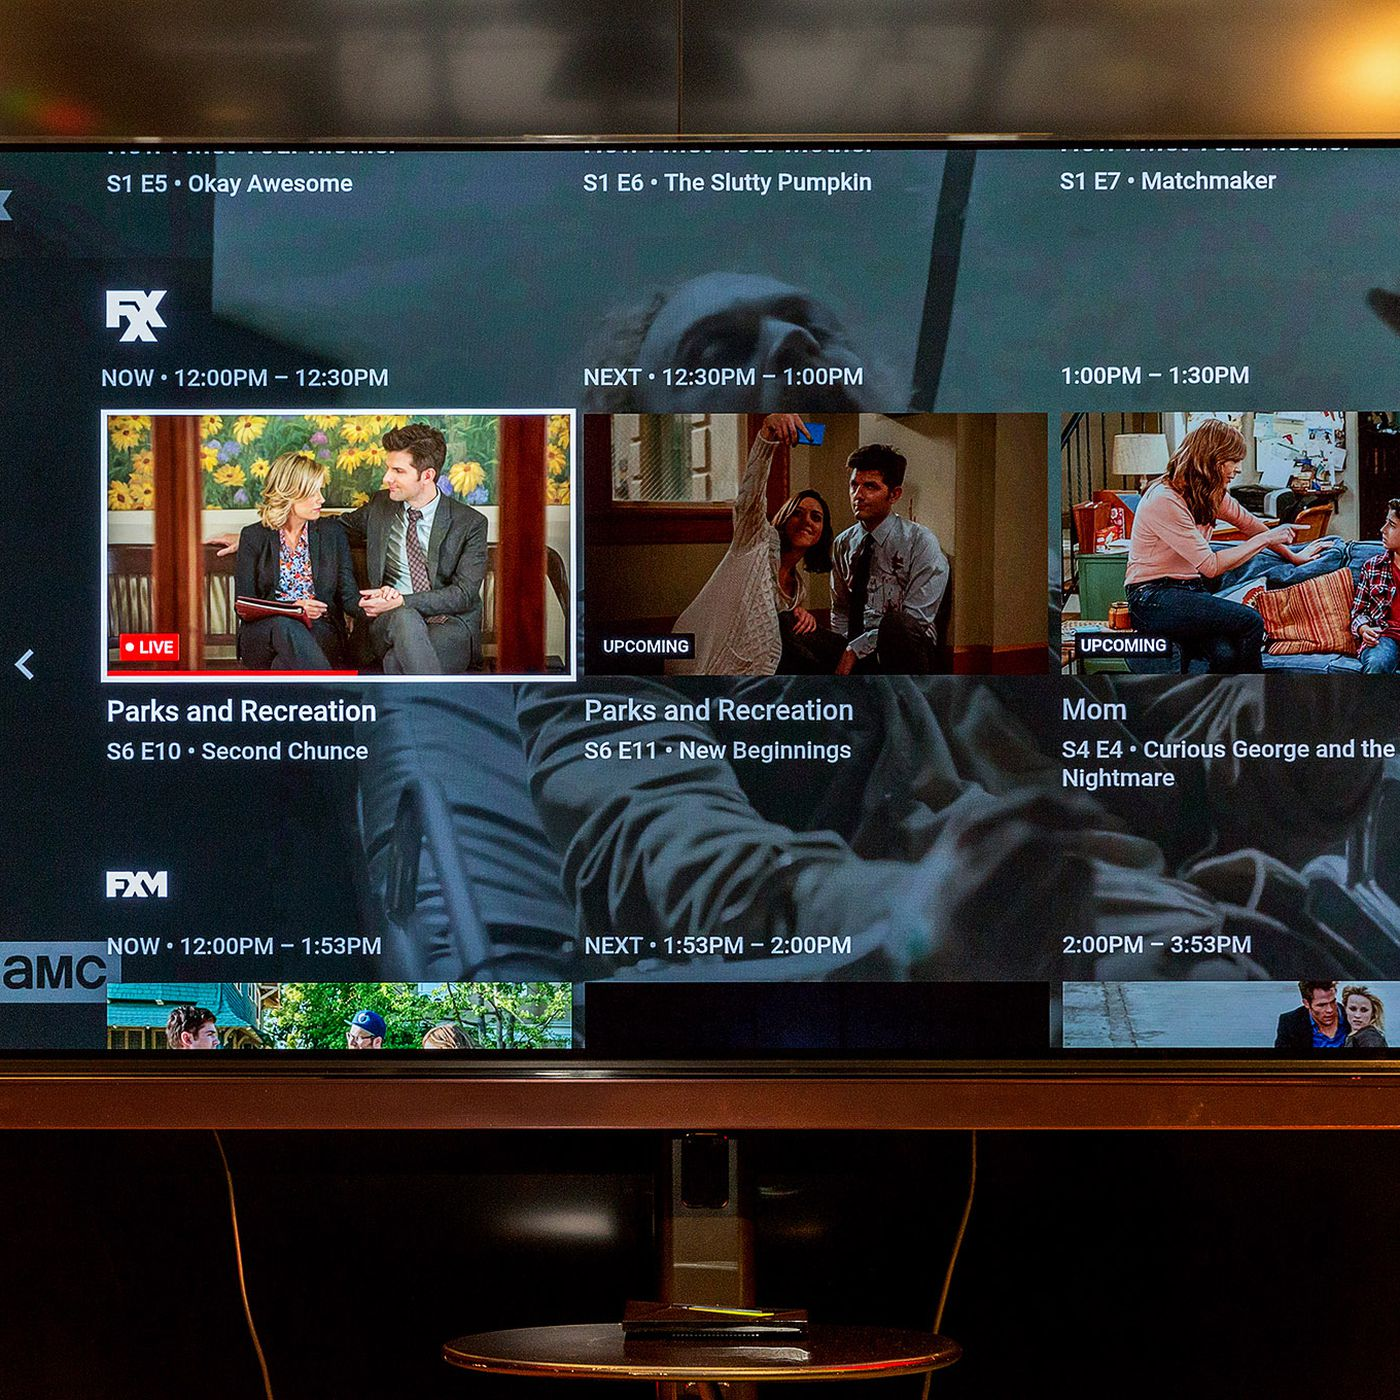 Youtube Tv Is Now Available On Recent Samsung Smart Tvs The Verge